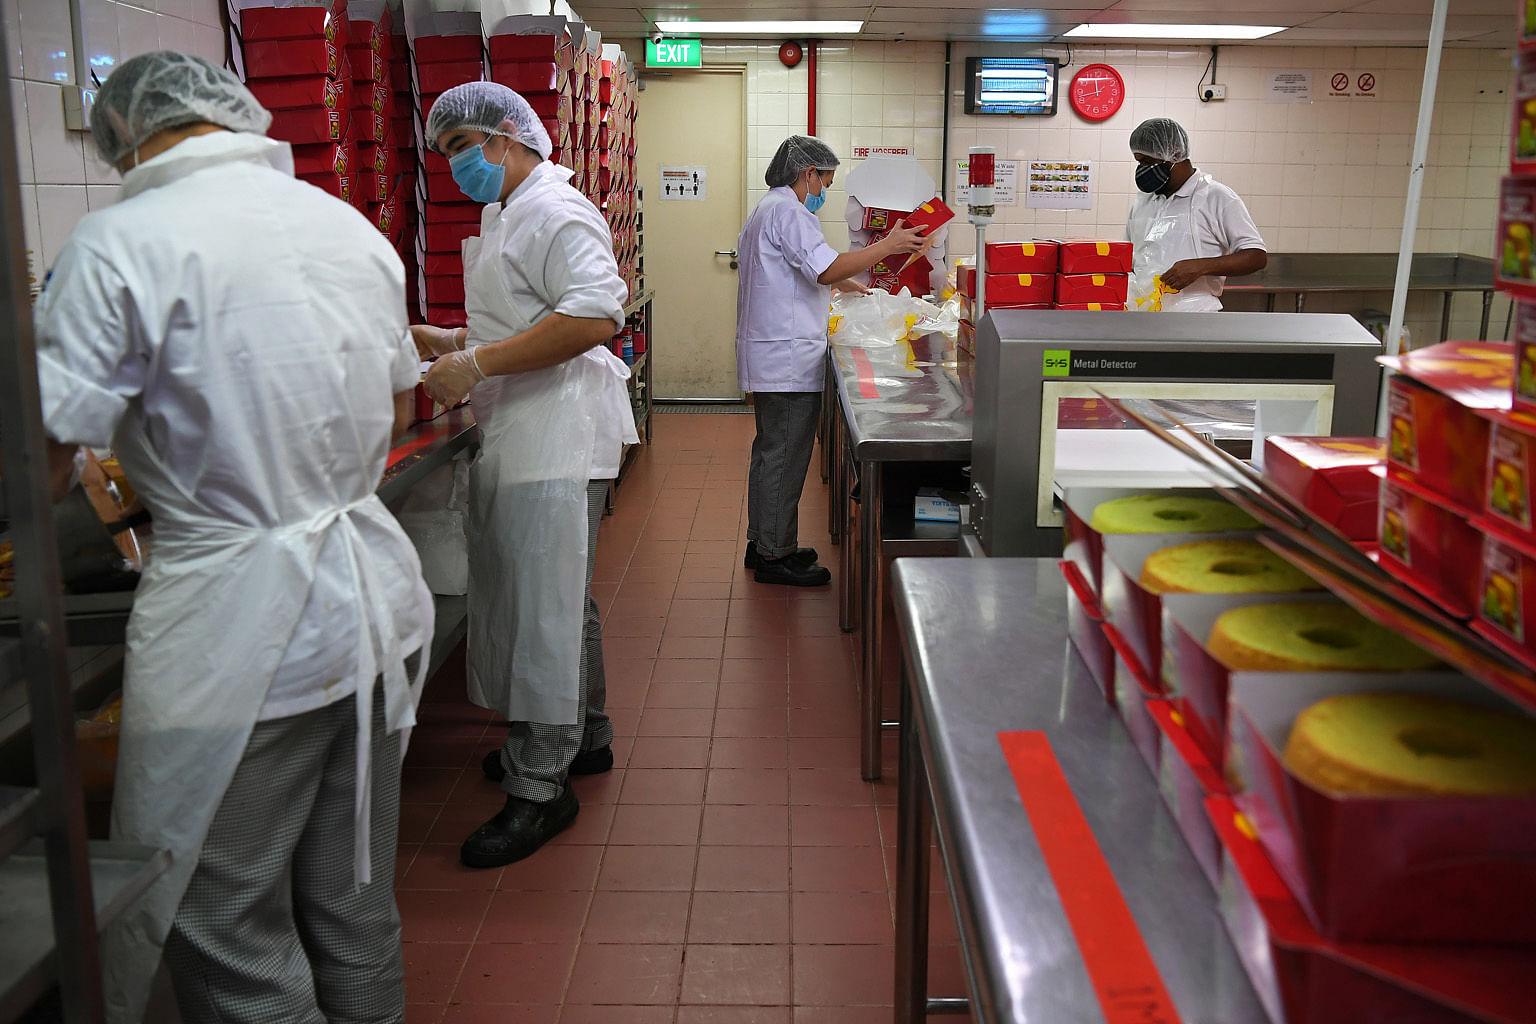 At Shine Precision Engineering in Pioneer, yellow boxes have been marked out next to the large machines to ensure that sufficient distance is kept between employees on the production floor. Cake decorators in confectionery chain Prima Deli's p